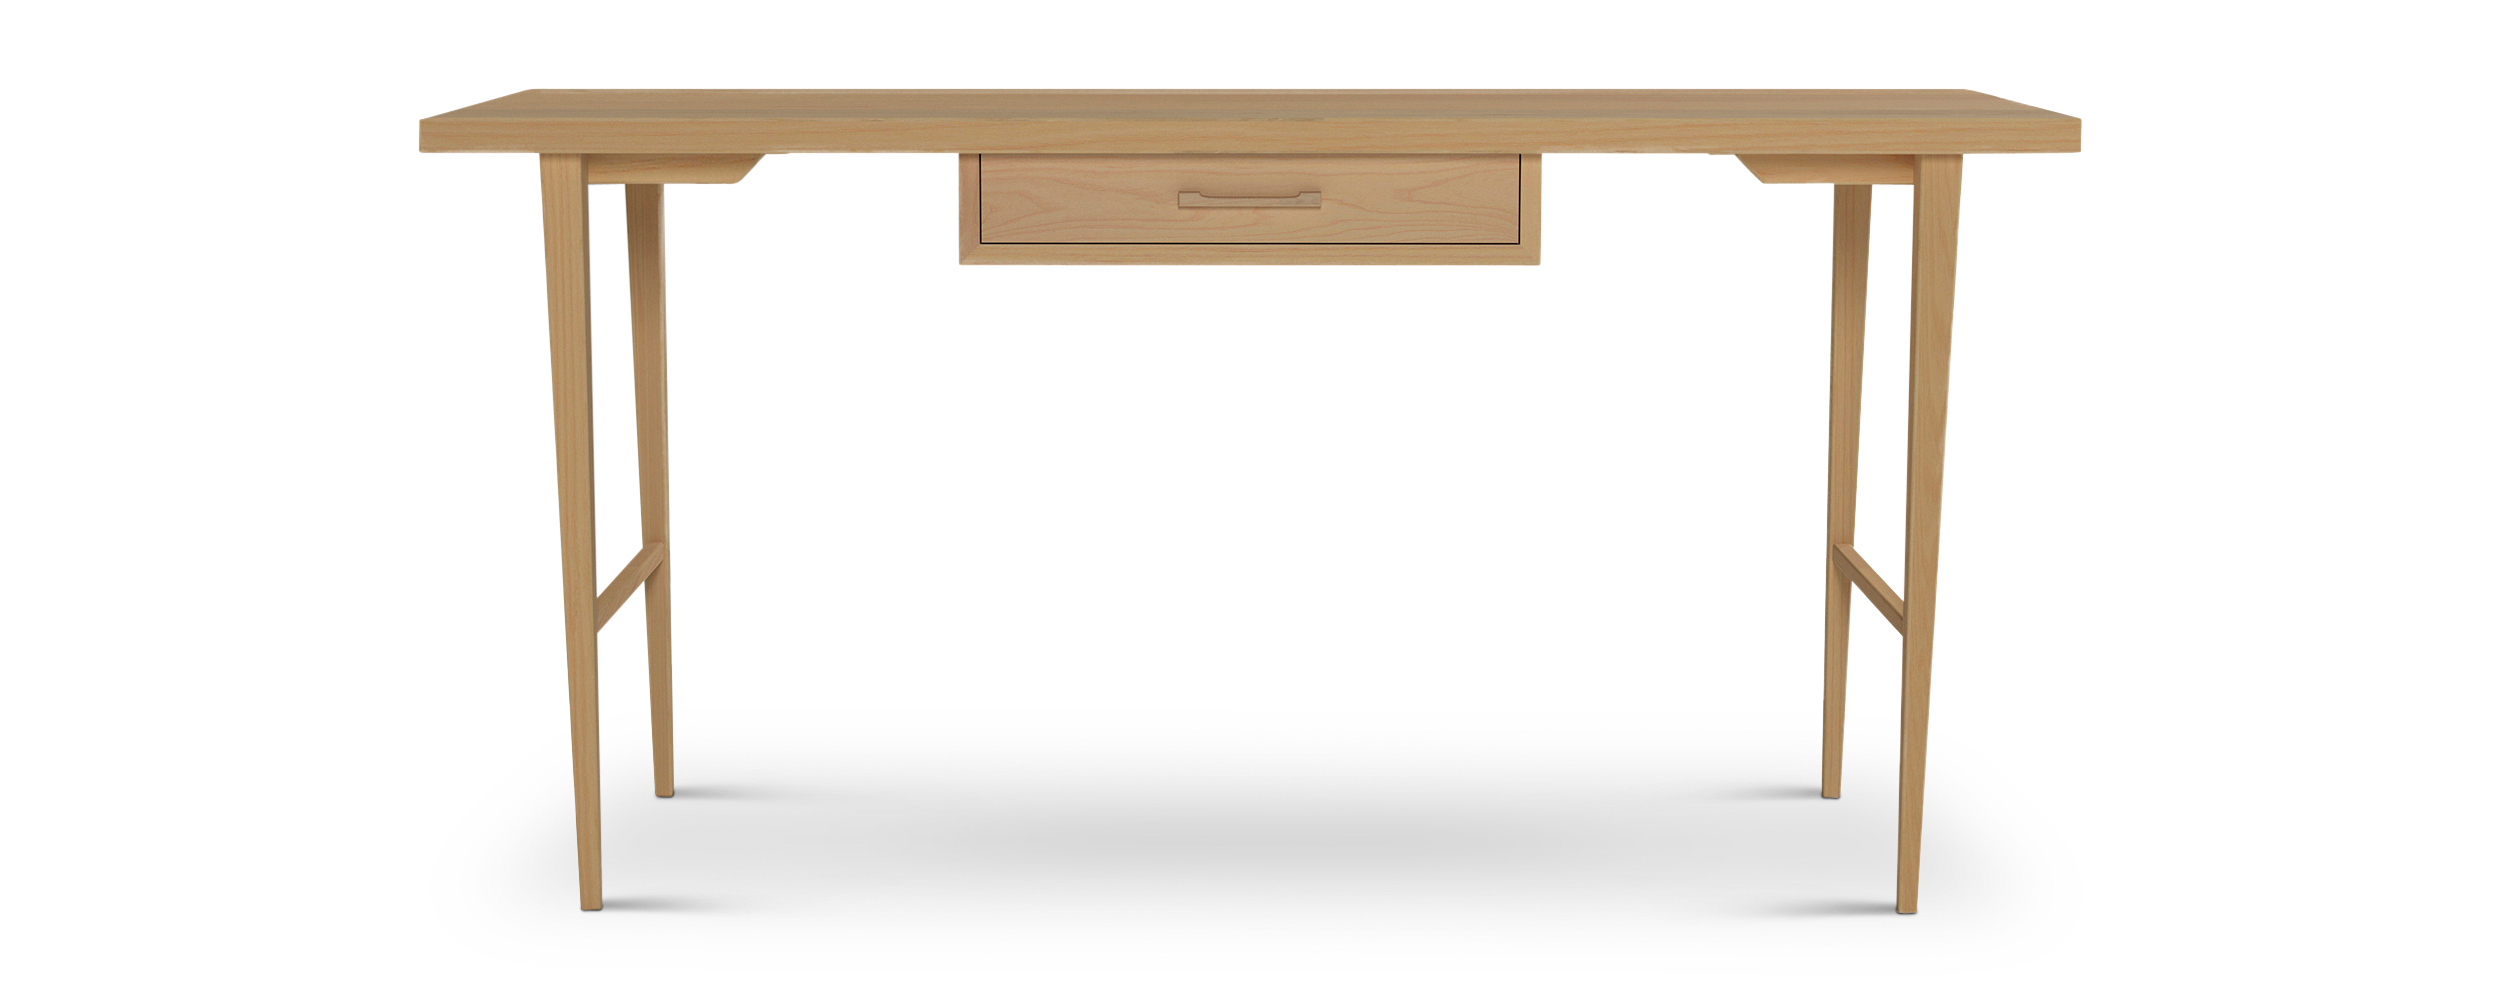 Single drawer ash classic solid wood desk with thin tapered legs